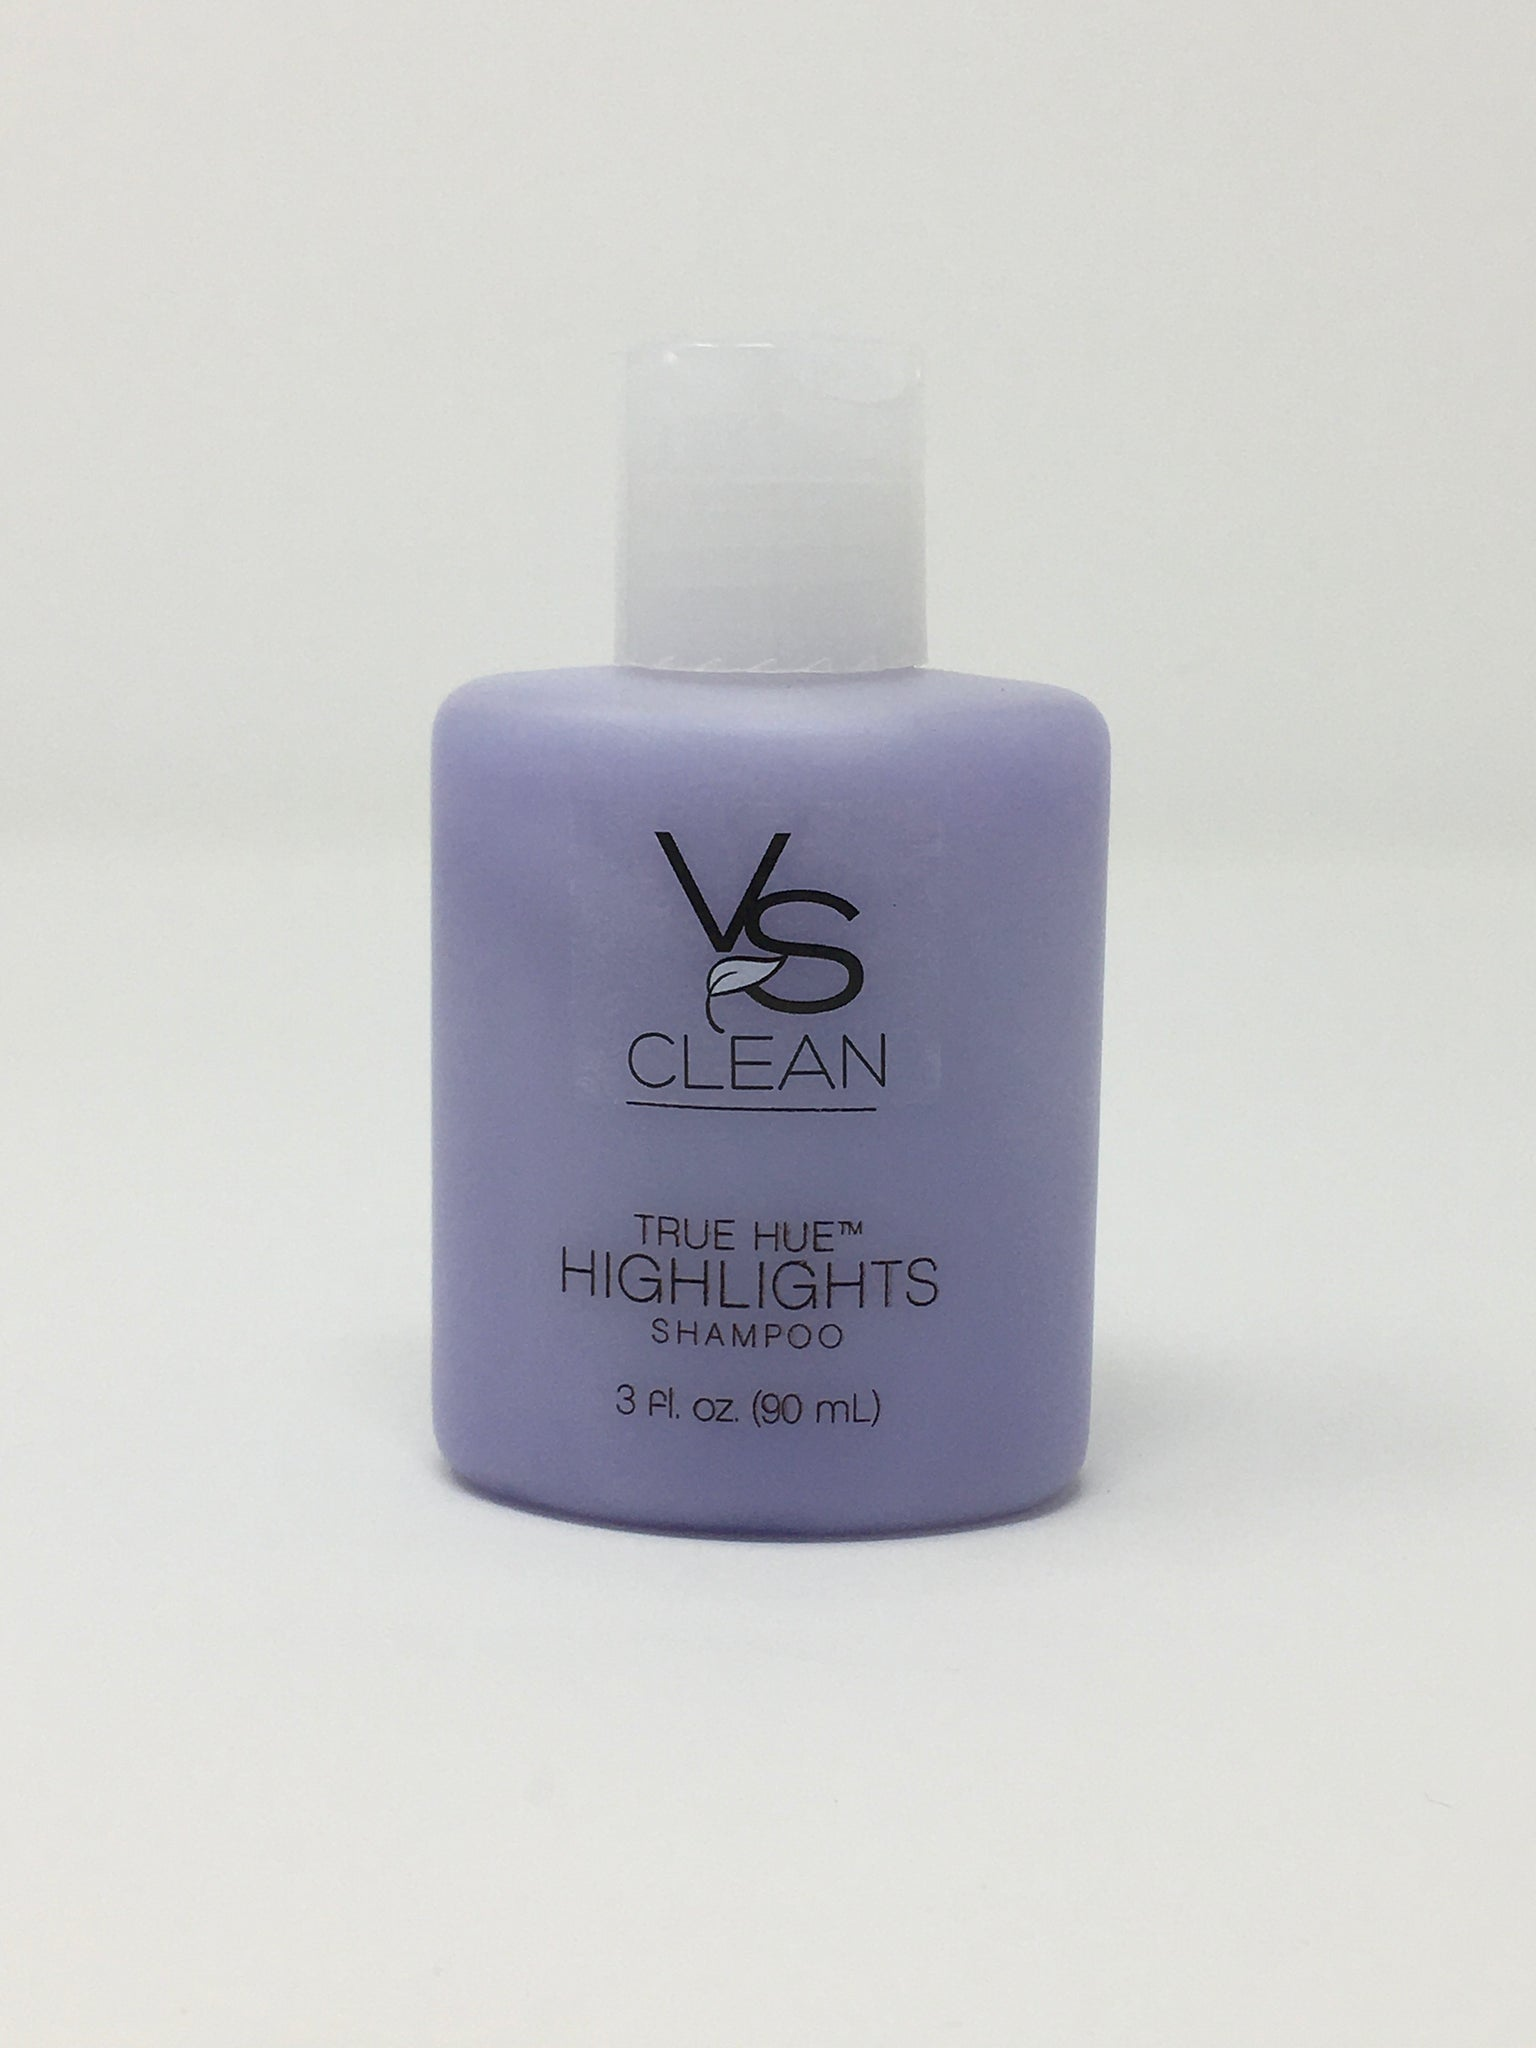 TRUE HUE HIGHLIGHTS SHAMPOO